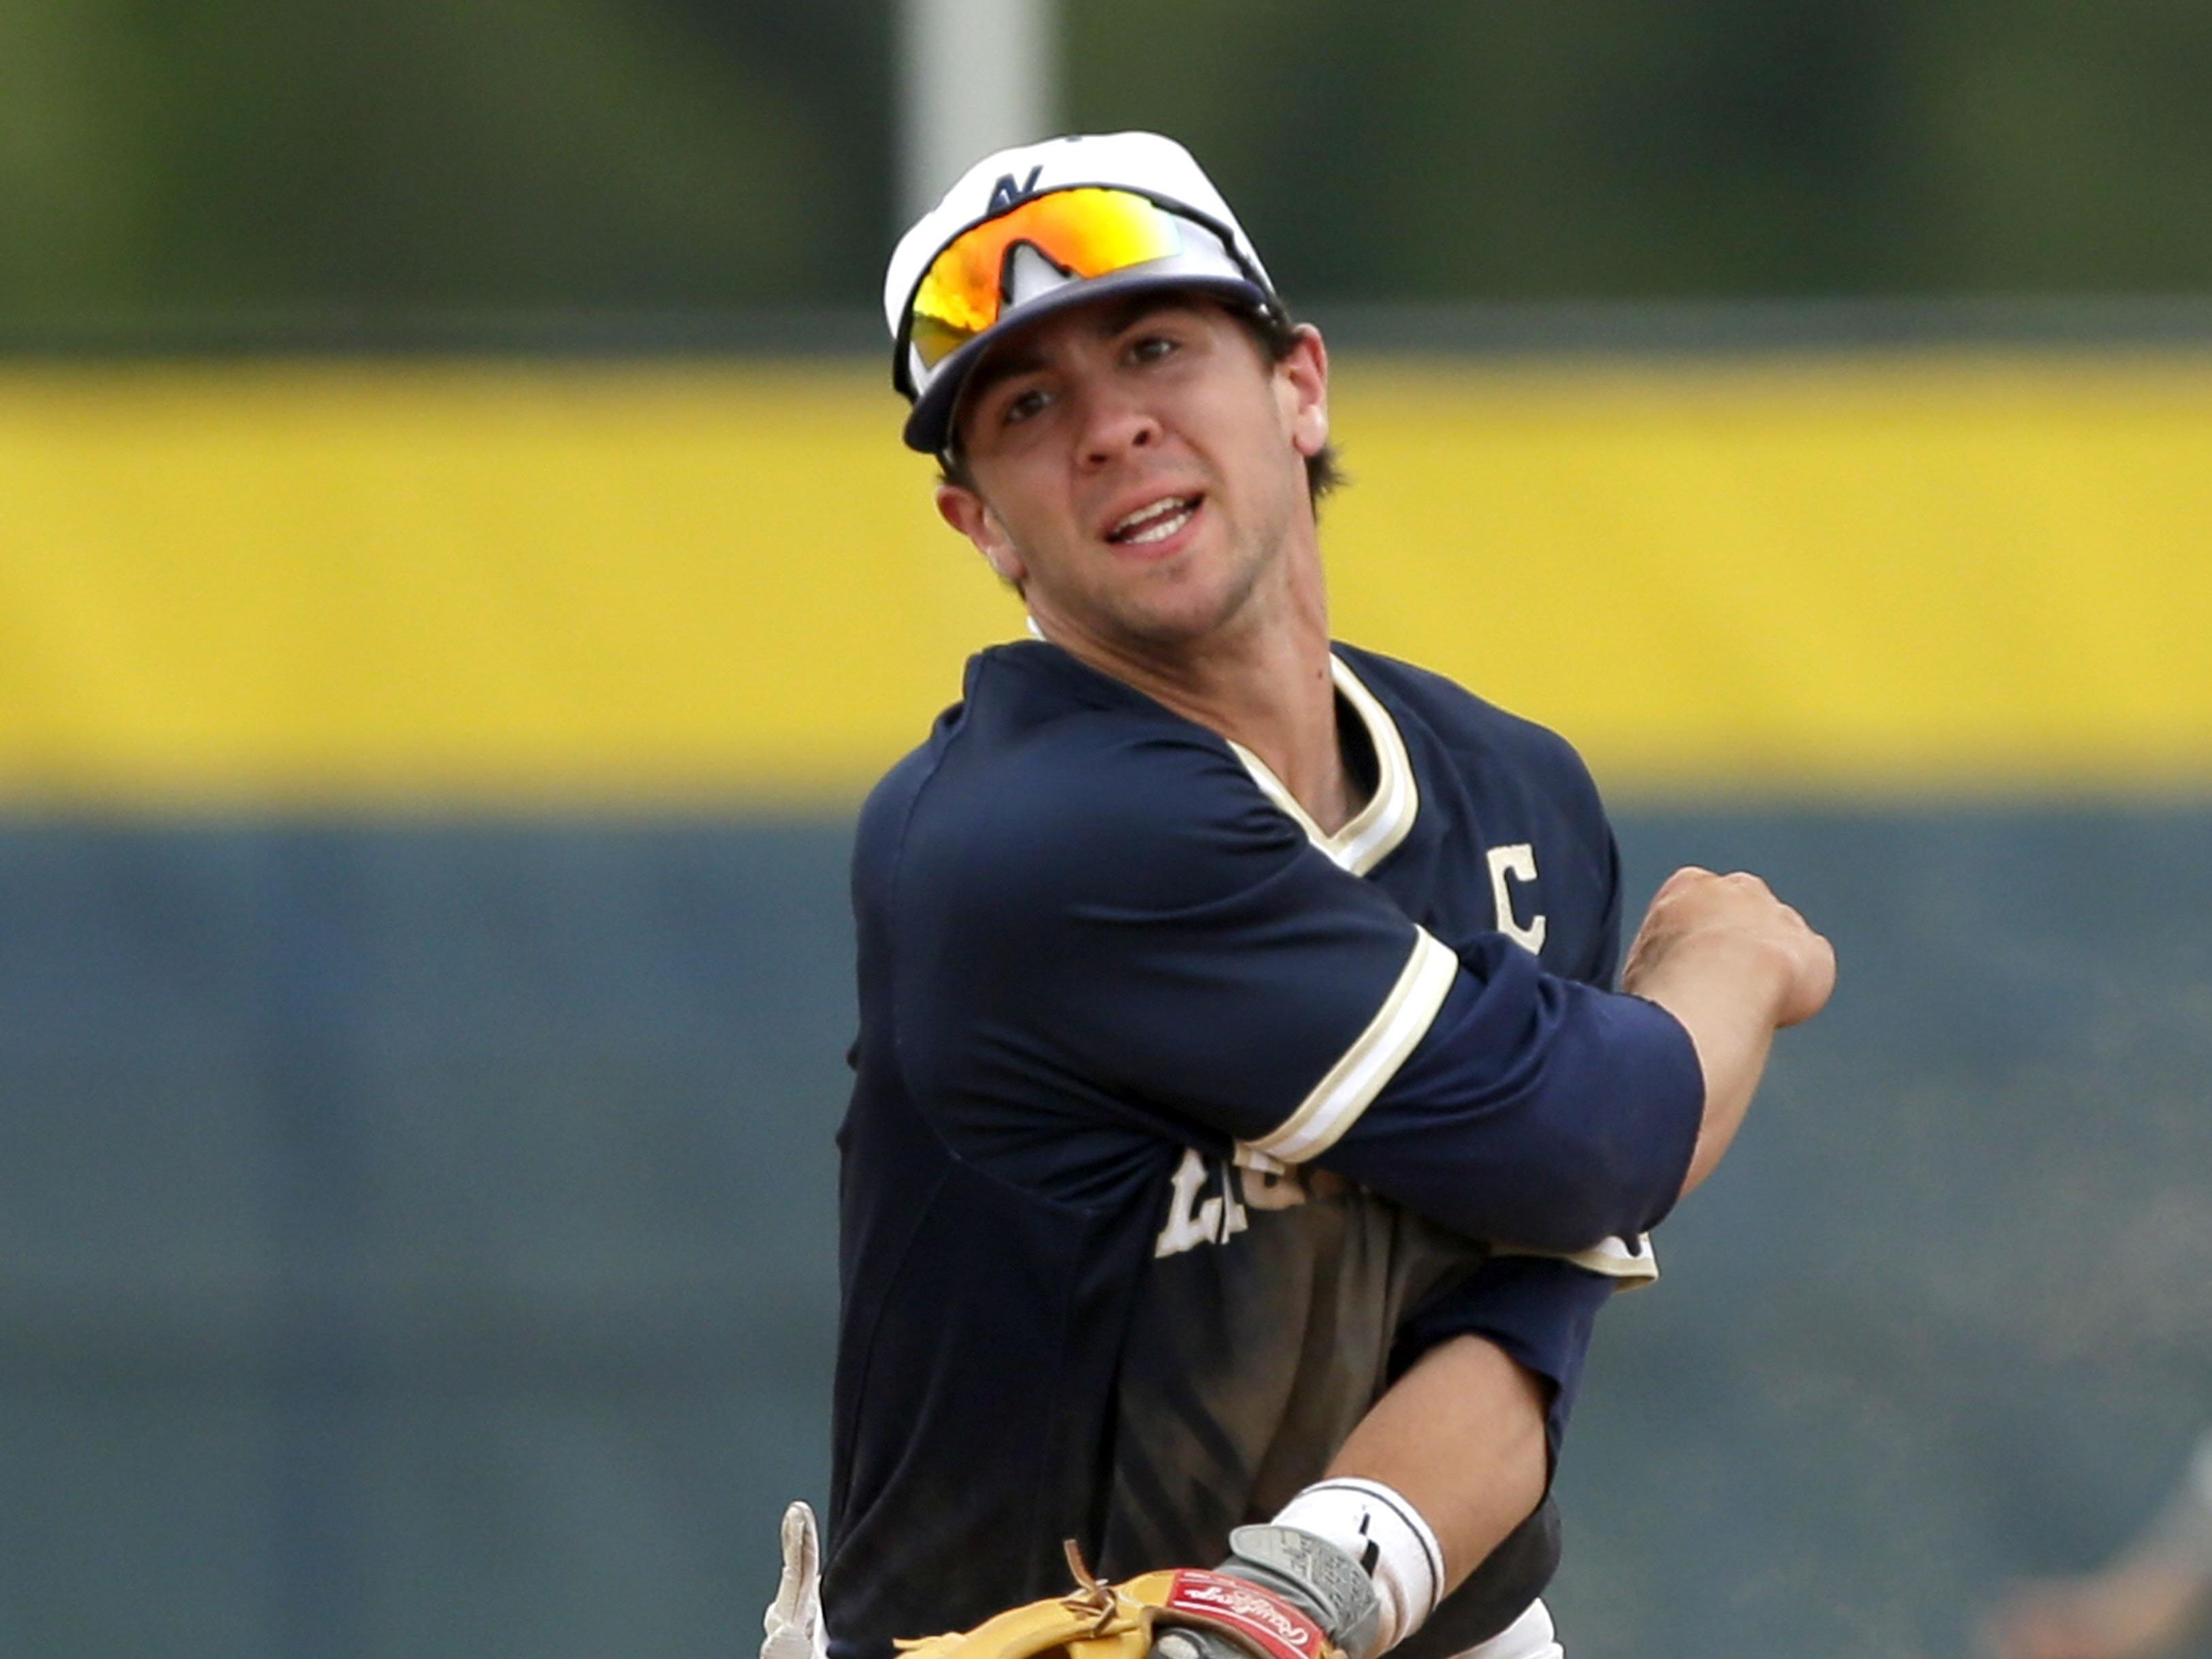 Appleton North senior shortstop Alex Henwood made the Wisconsin Baseball Coaches Association all-state first team.